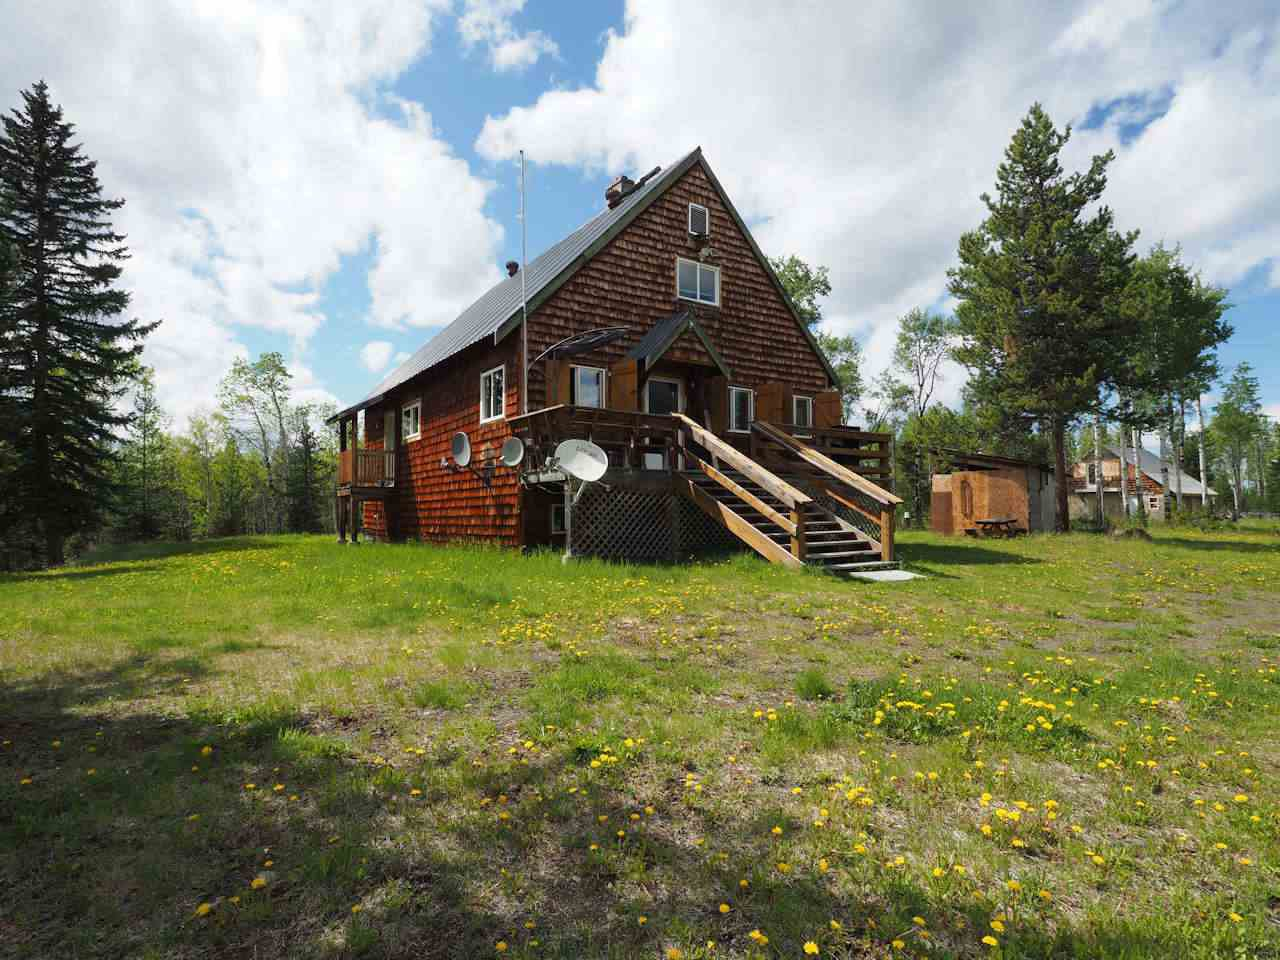 Main Photo: 7240 HOLMES Road in Lone Butte: Lone Butte/Green Lk/Watch Lk House for sale (100 Mile House (Zone 10))  : MLS®# R2462183